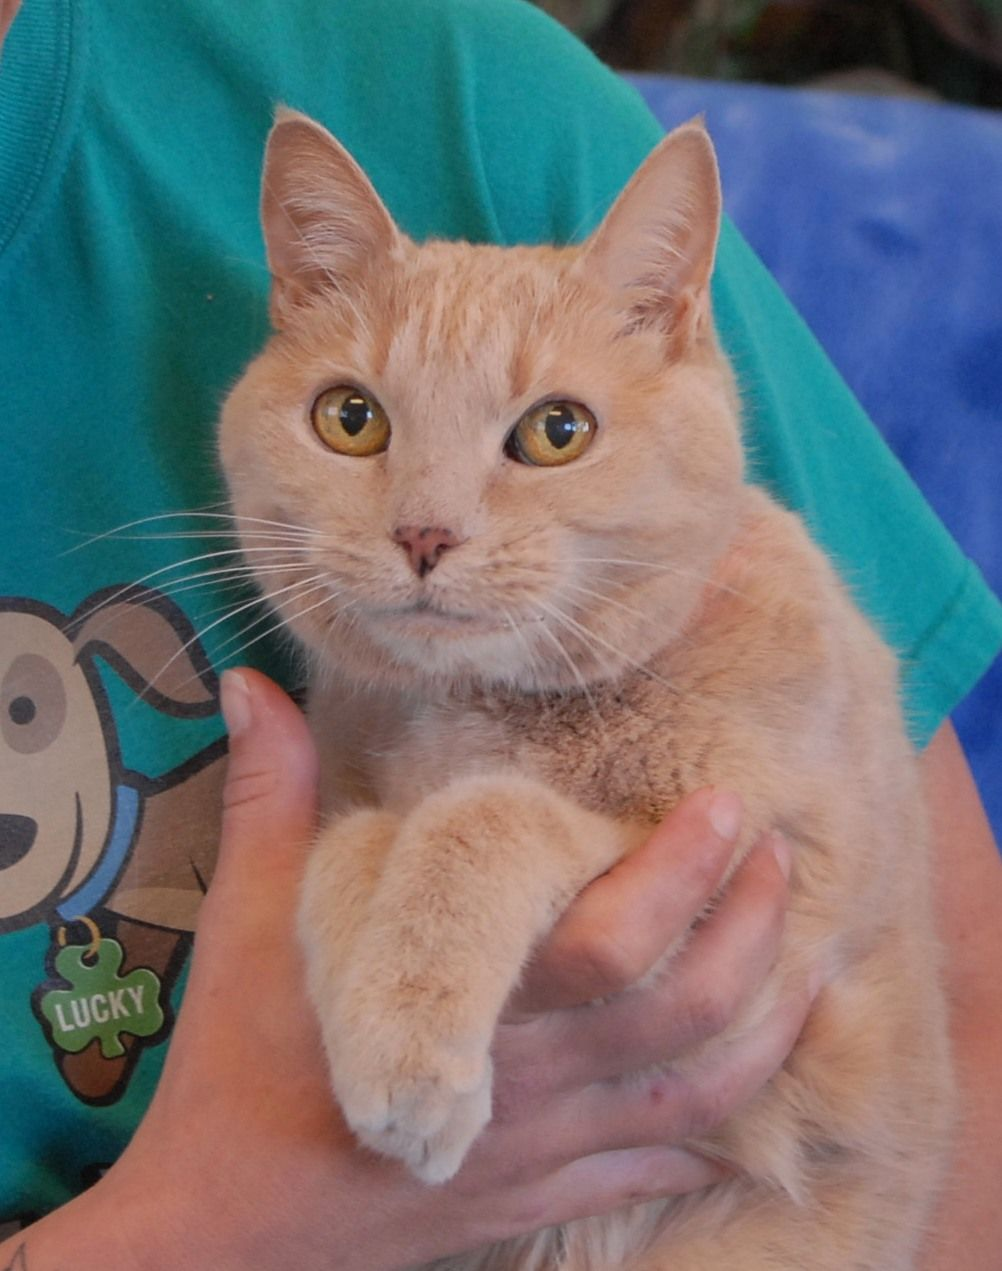 Grandma is 17 years of age and debuting for adoption today at Nevada SPCA (www.nevadaspca.org).  She is a graceful, humble cream tabby with gold eyes, spayed, and best suited for a calm home environment.  After so many years of loving companionship, someone failed Grandma and she is homeless due to no fault of her own.  We plead for your help in finding Grandma a hero so she can be placed in a loving home environment as soon as possible.